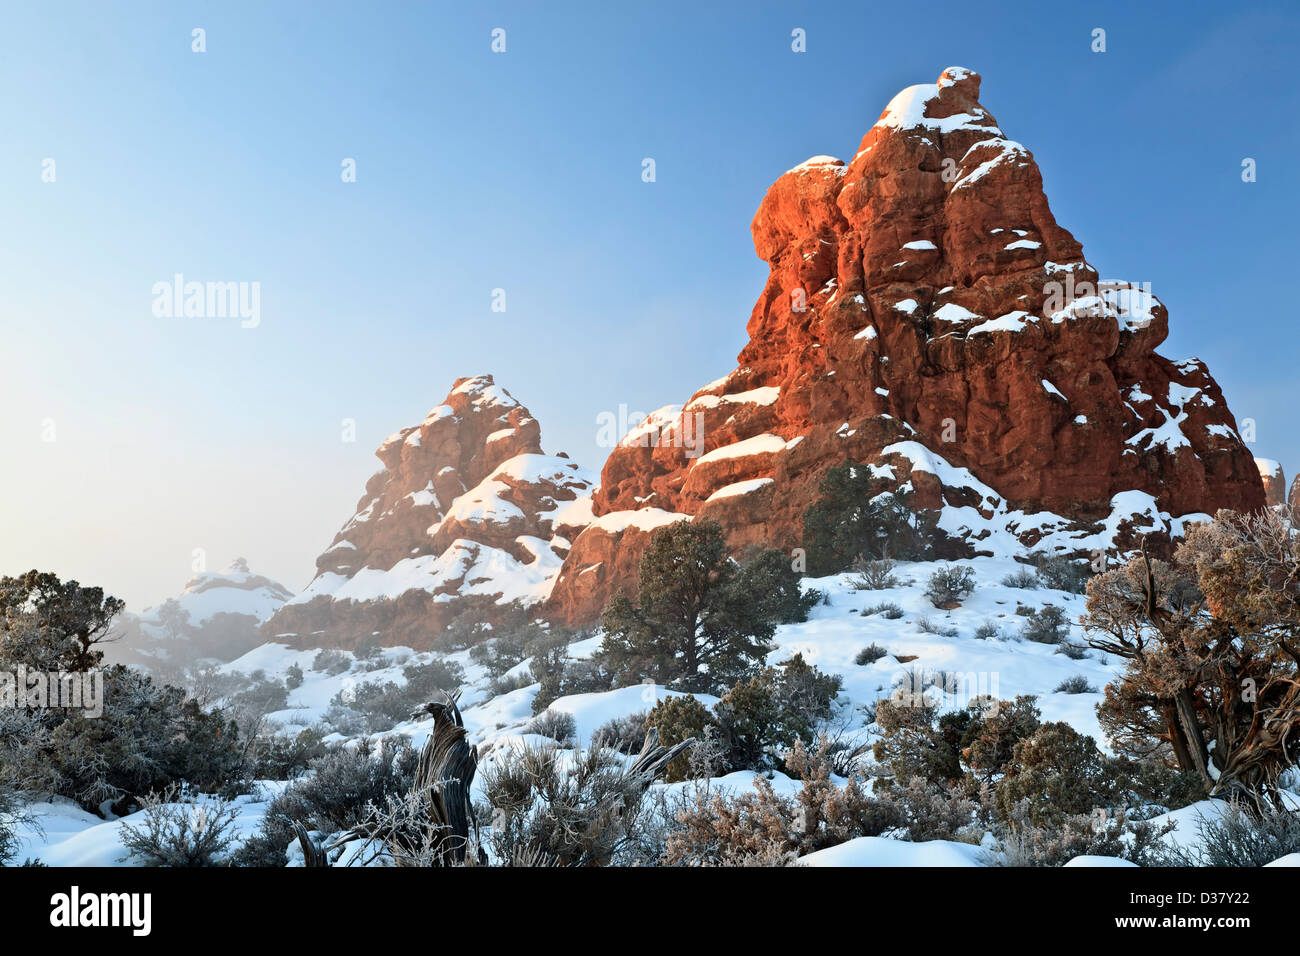 Sandstone formations and landscape under snow, The Windows, Arches National Park, Utah USA - Stock Image